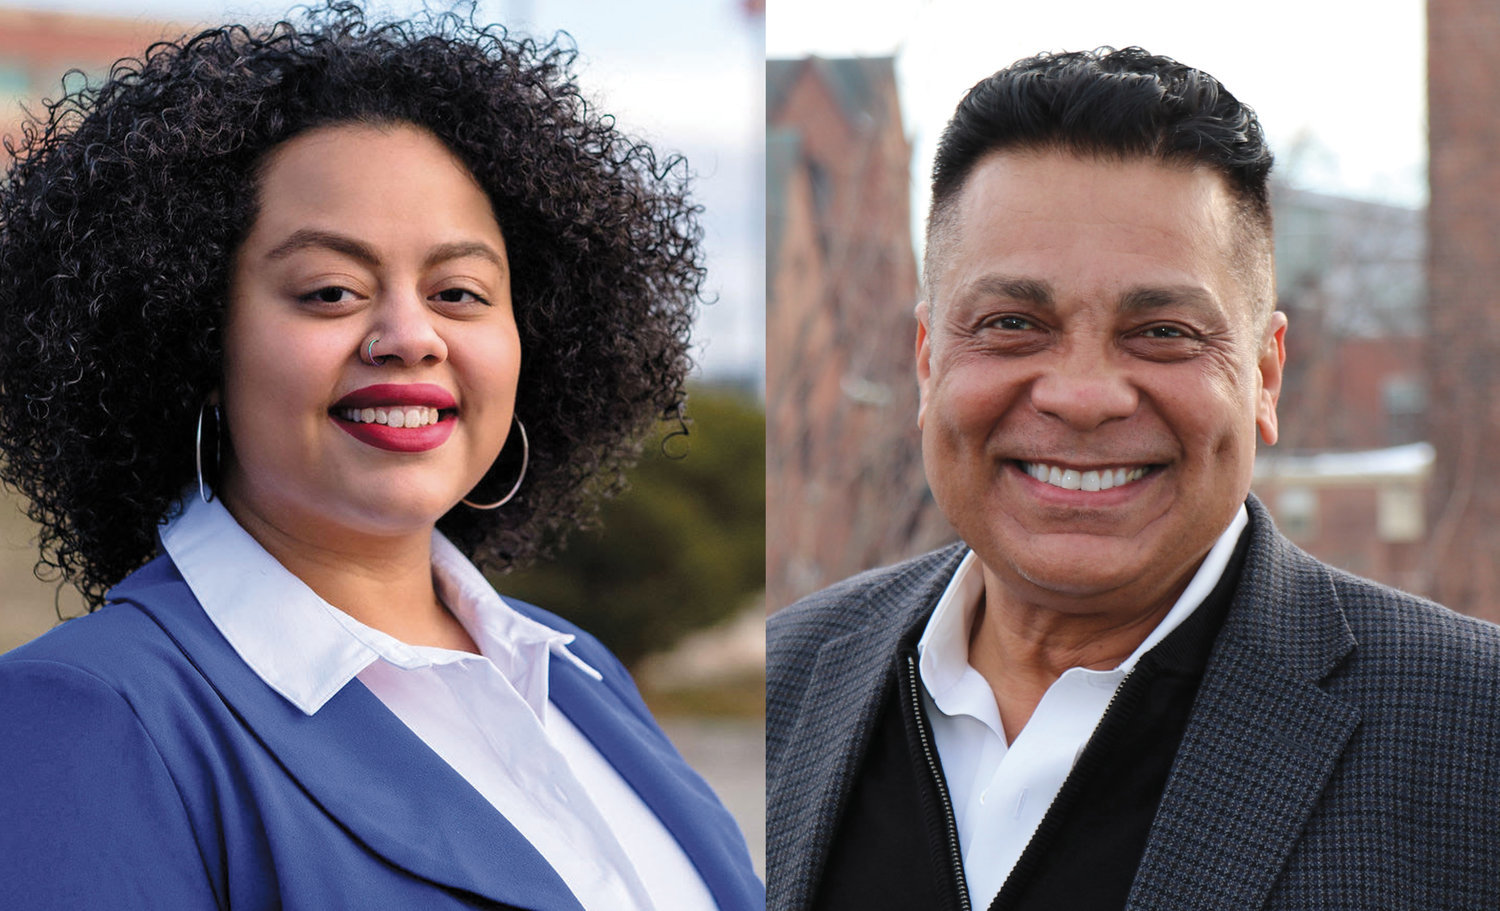 Newburgh residents Genesis Ramos and Roger Ramjug, both Democrats have announced they are running for district six, following James Kulisek's decision to not seek another term.